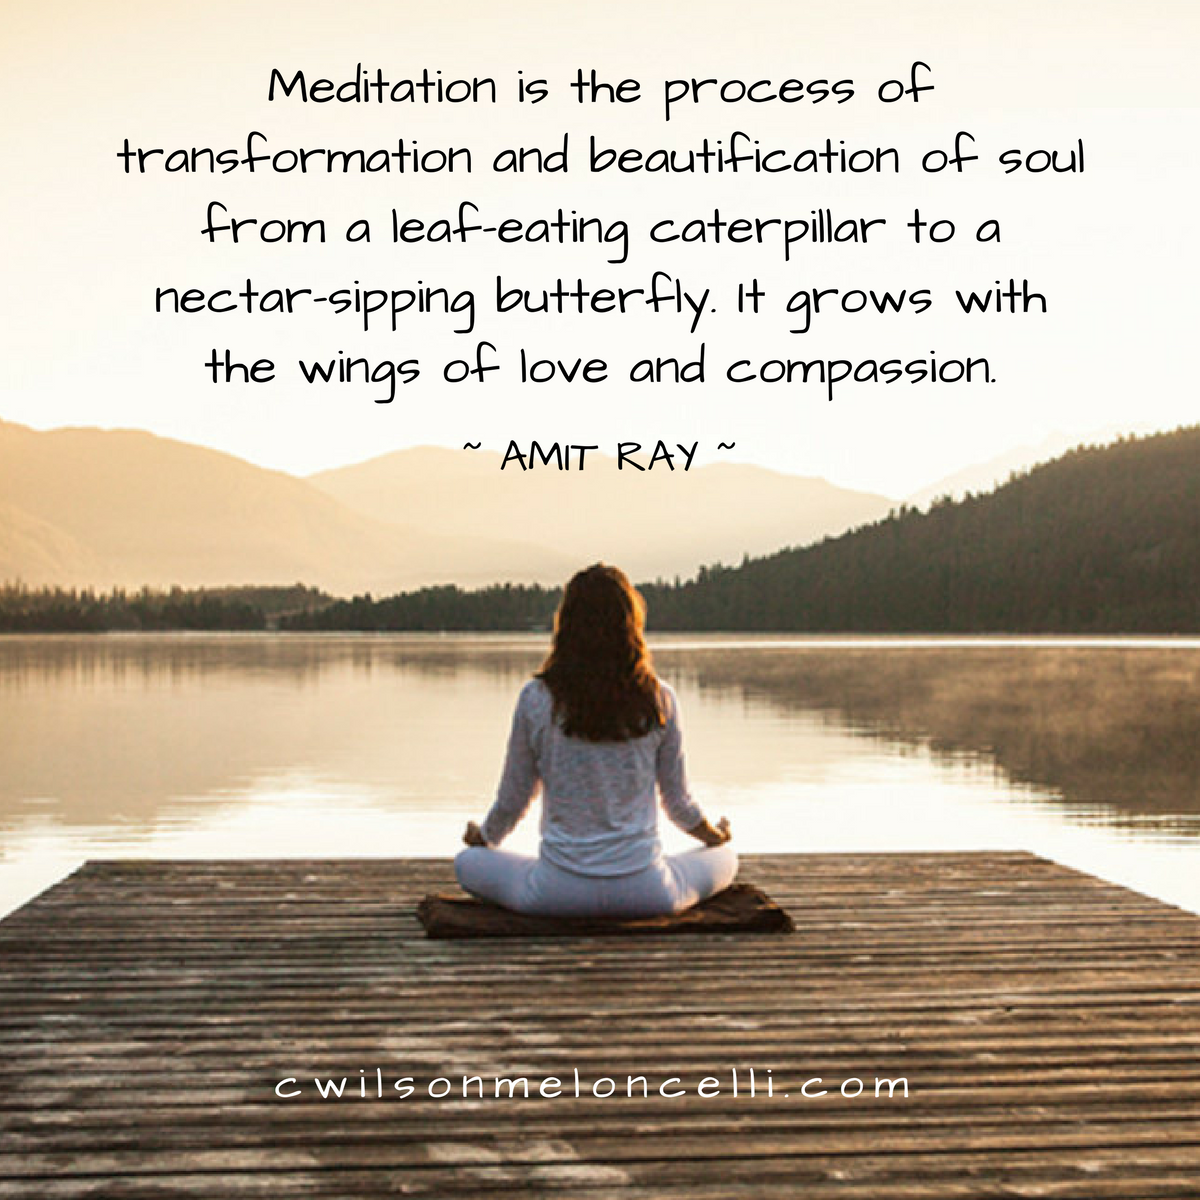 Meditation is the process of transformation and